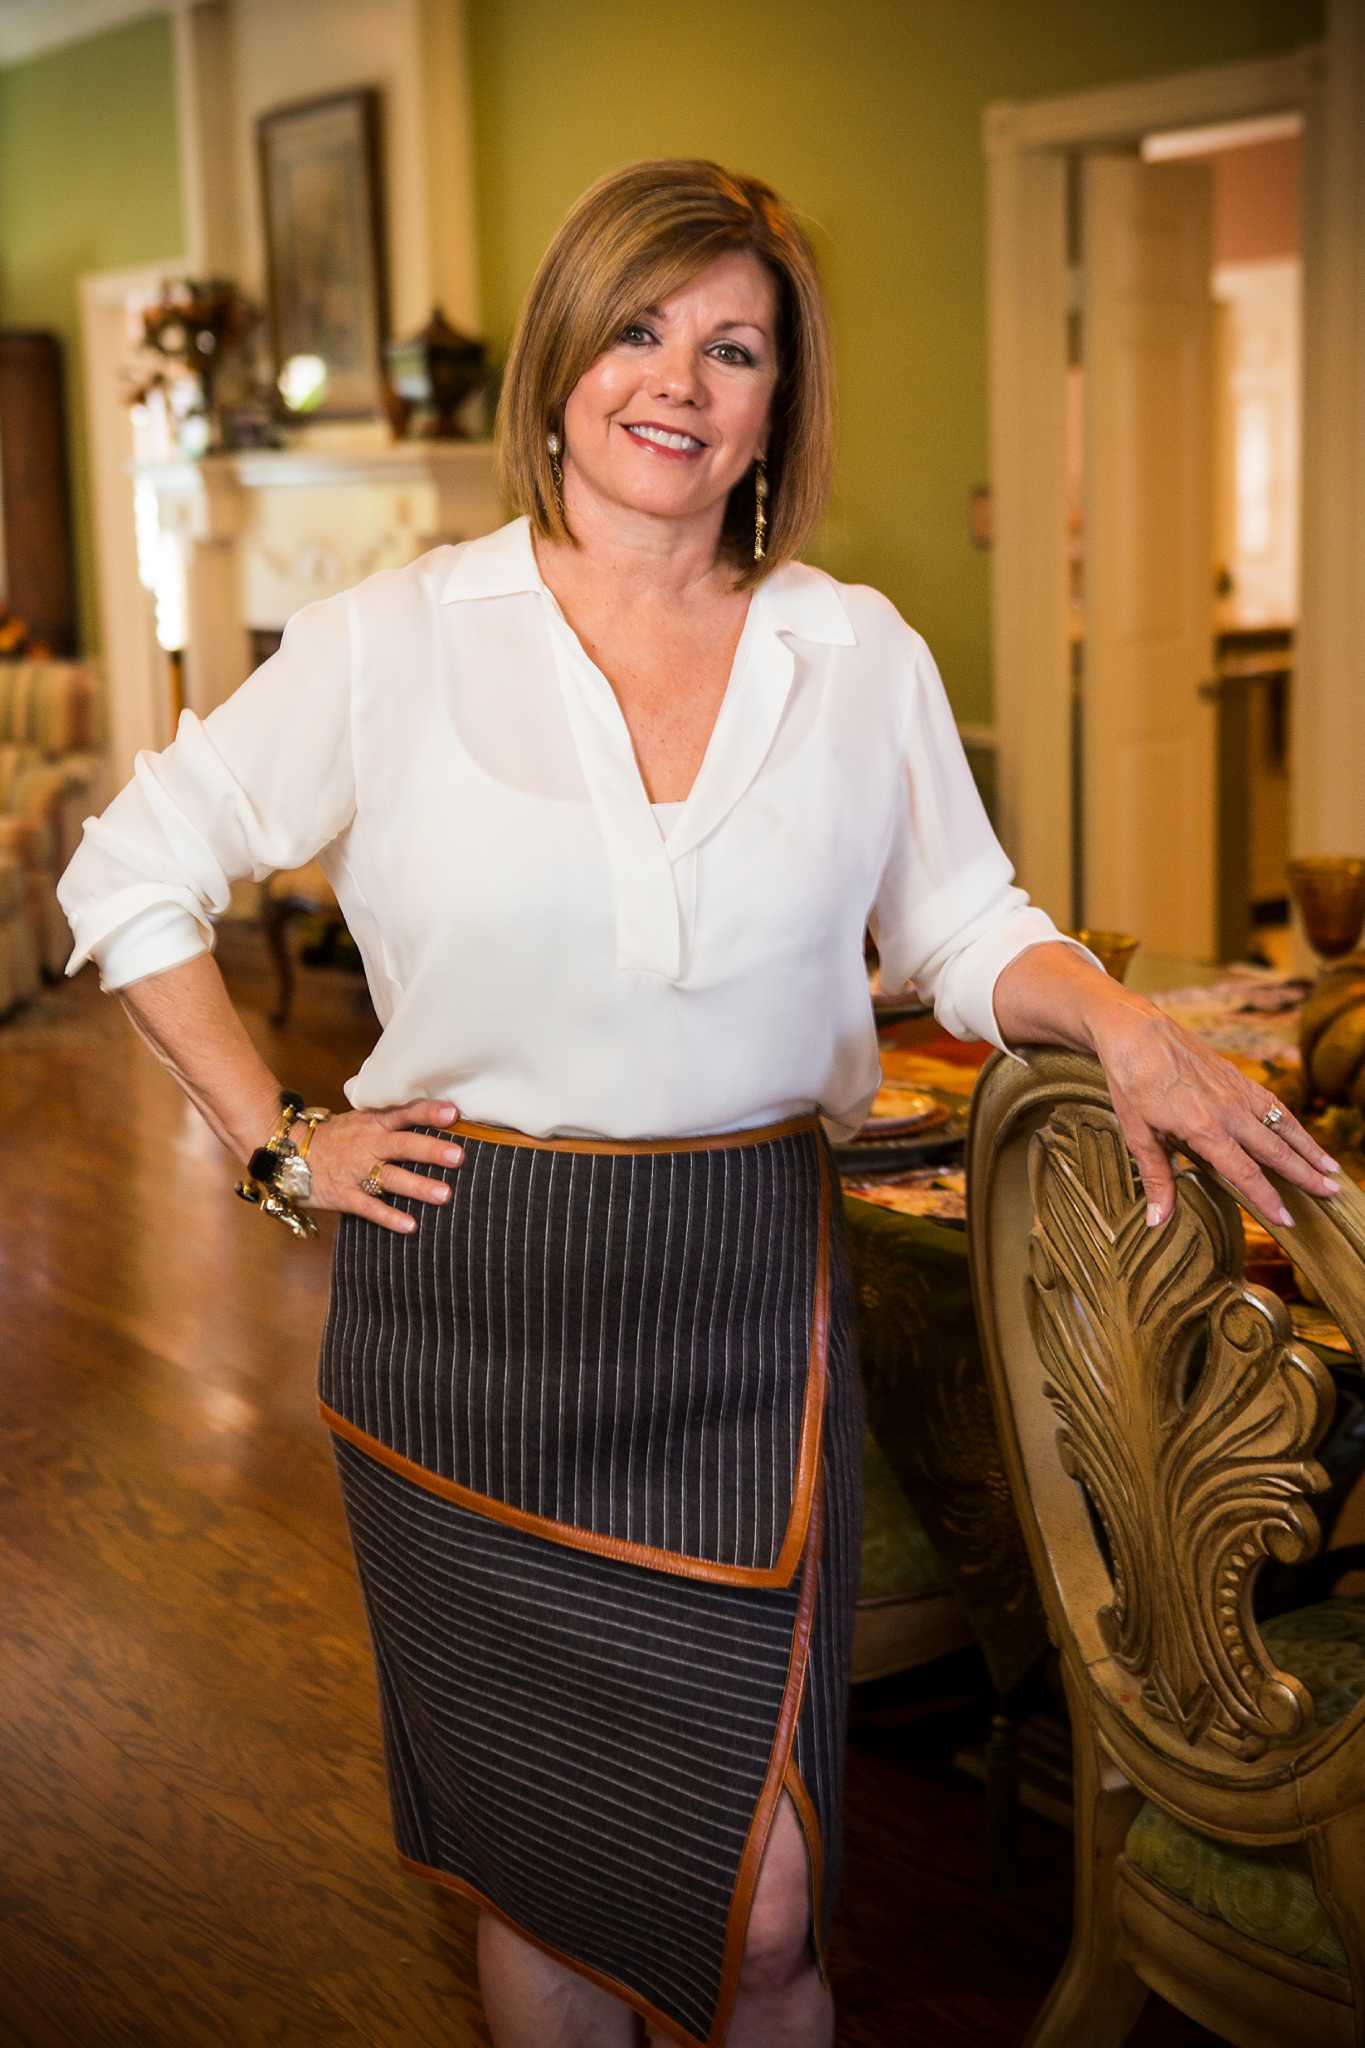 Jenny Senter Small Town Girl Finds Her Niche In Texas City Houston Chronicle